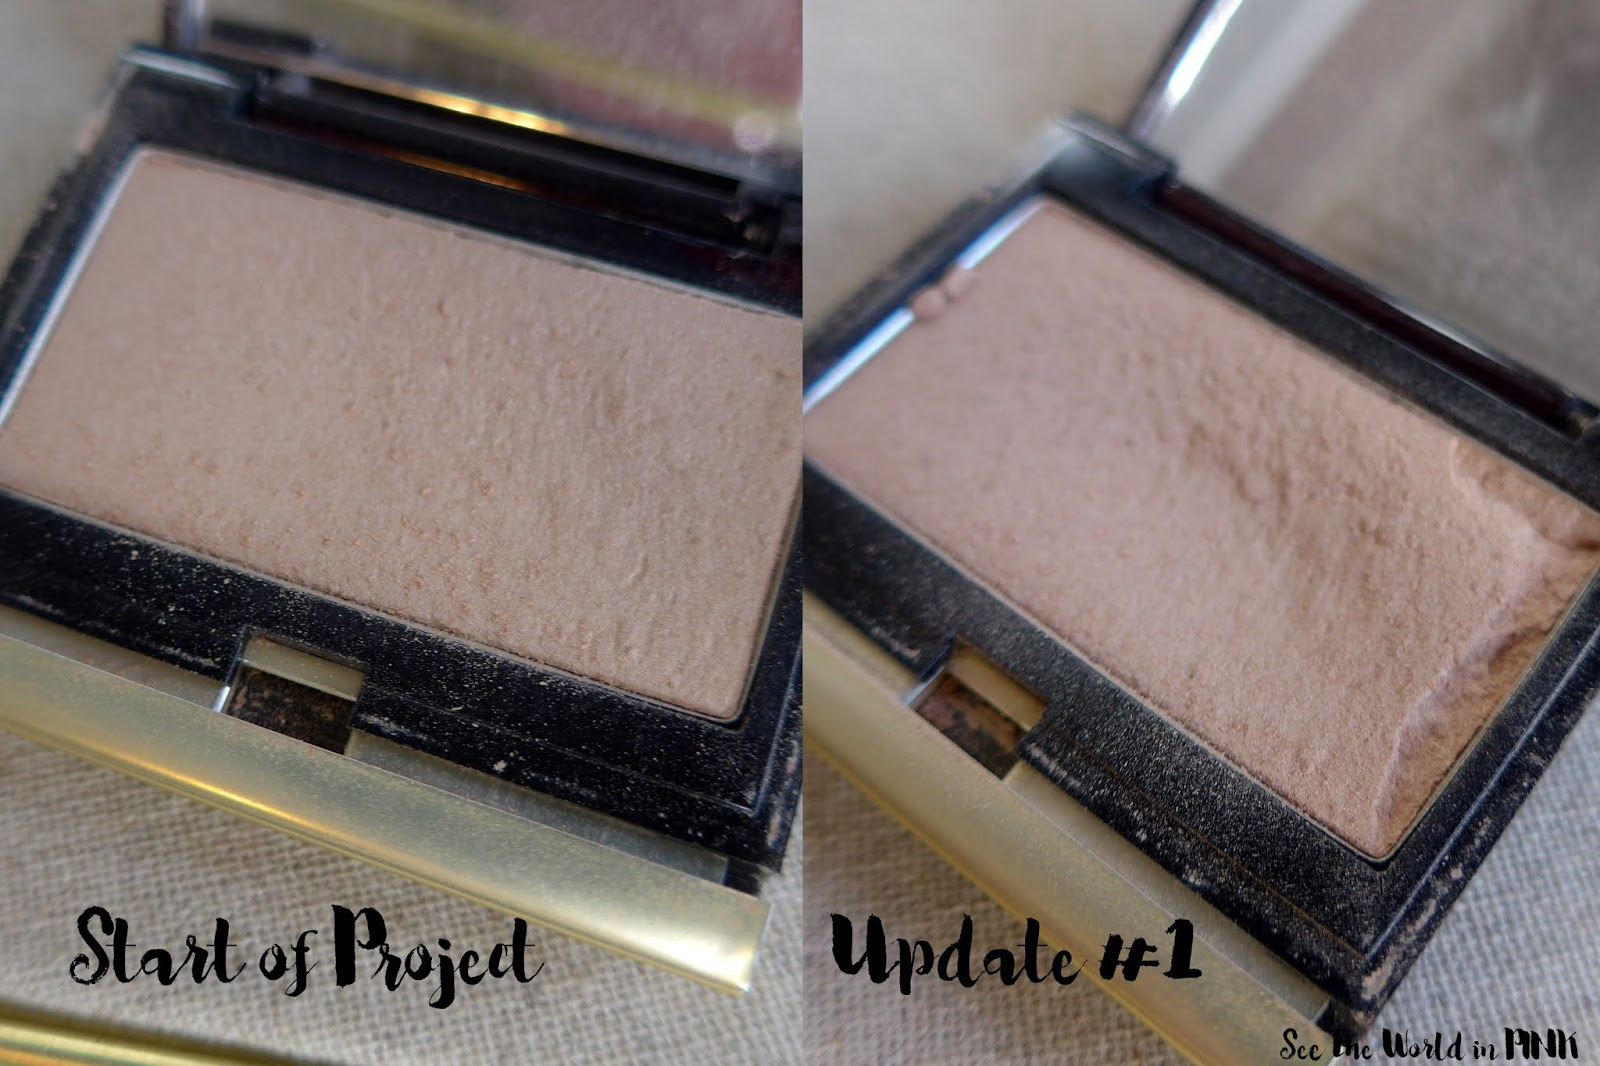 20 in 2020 Project Pan - Update #1